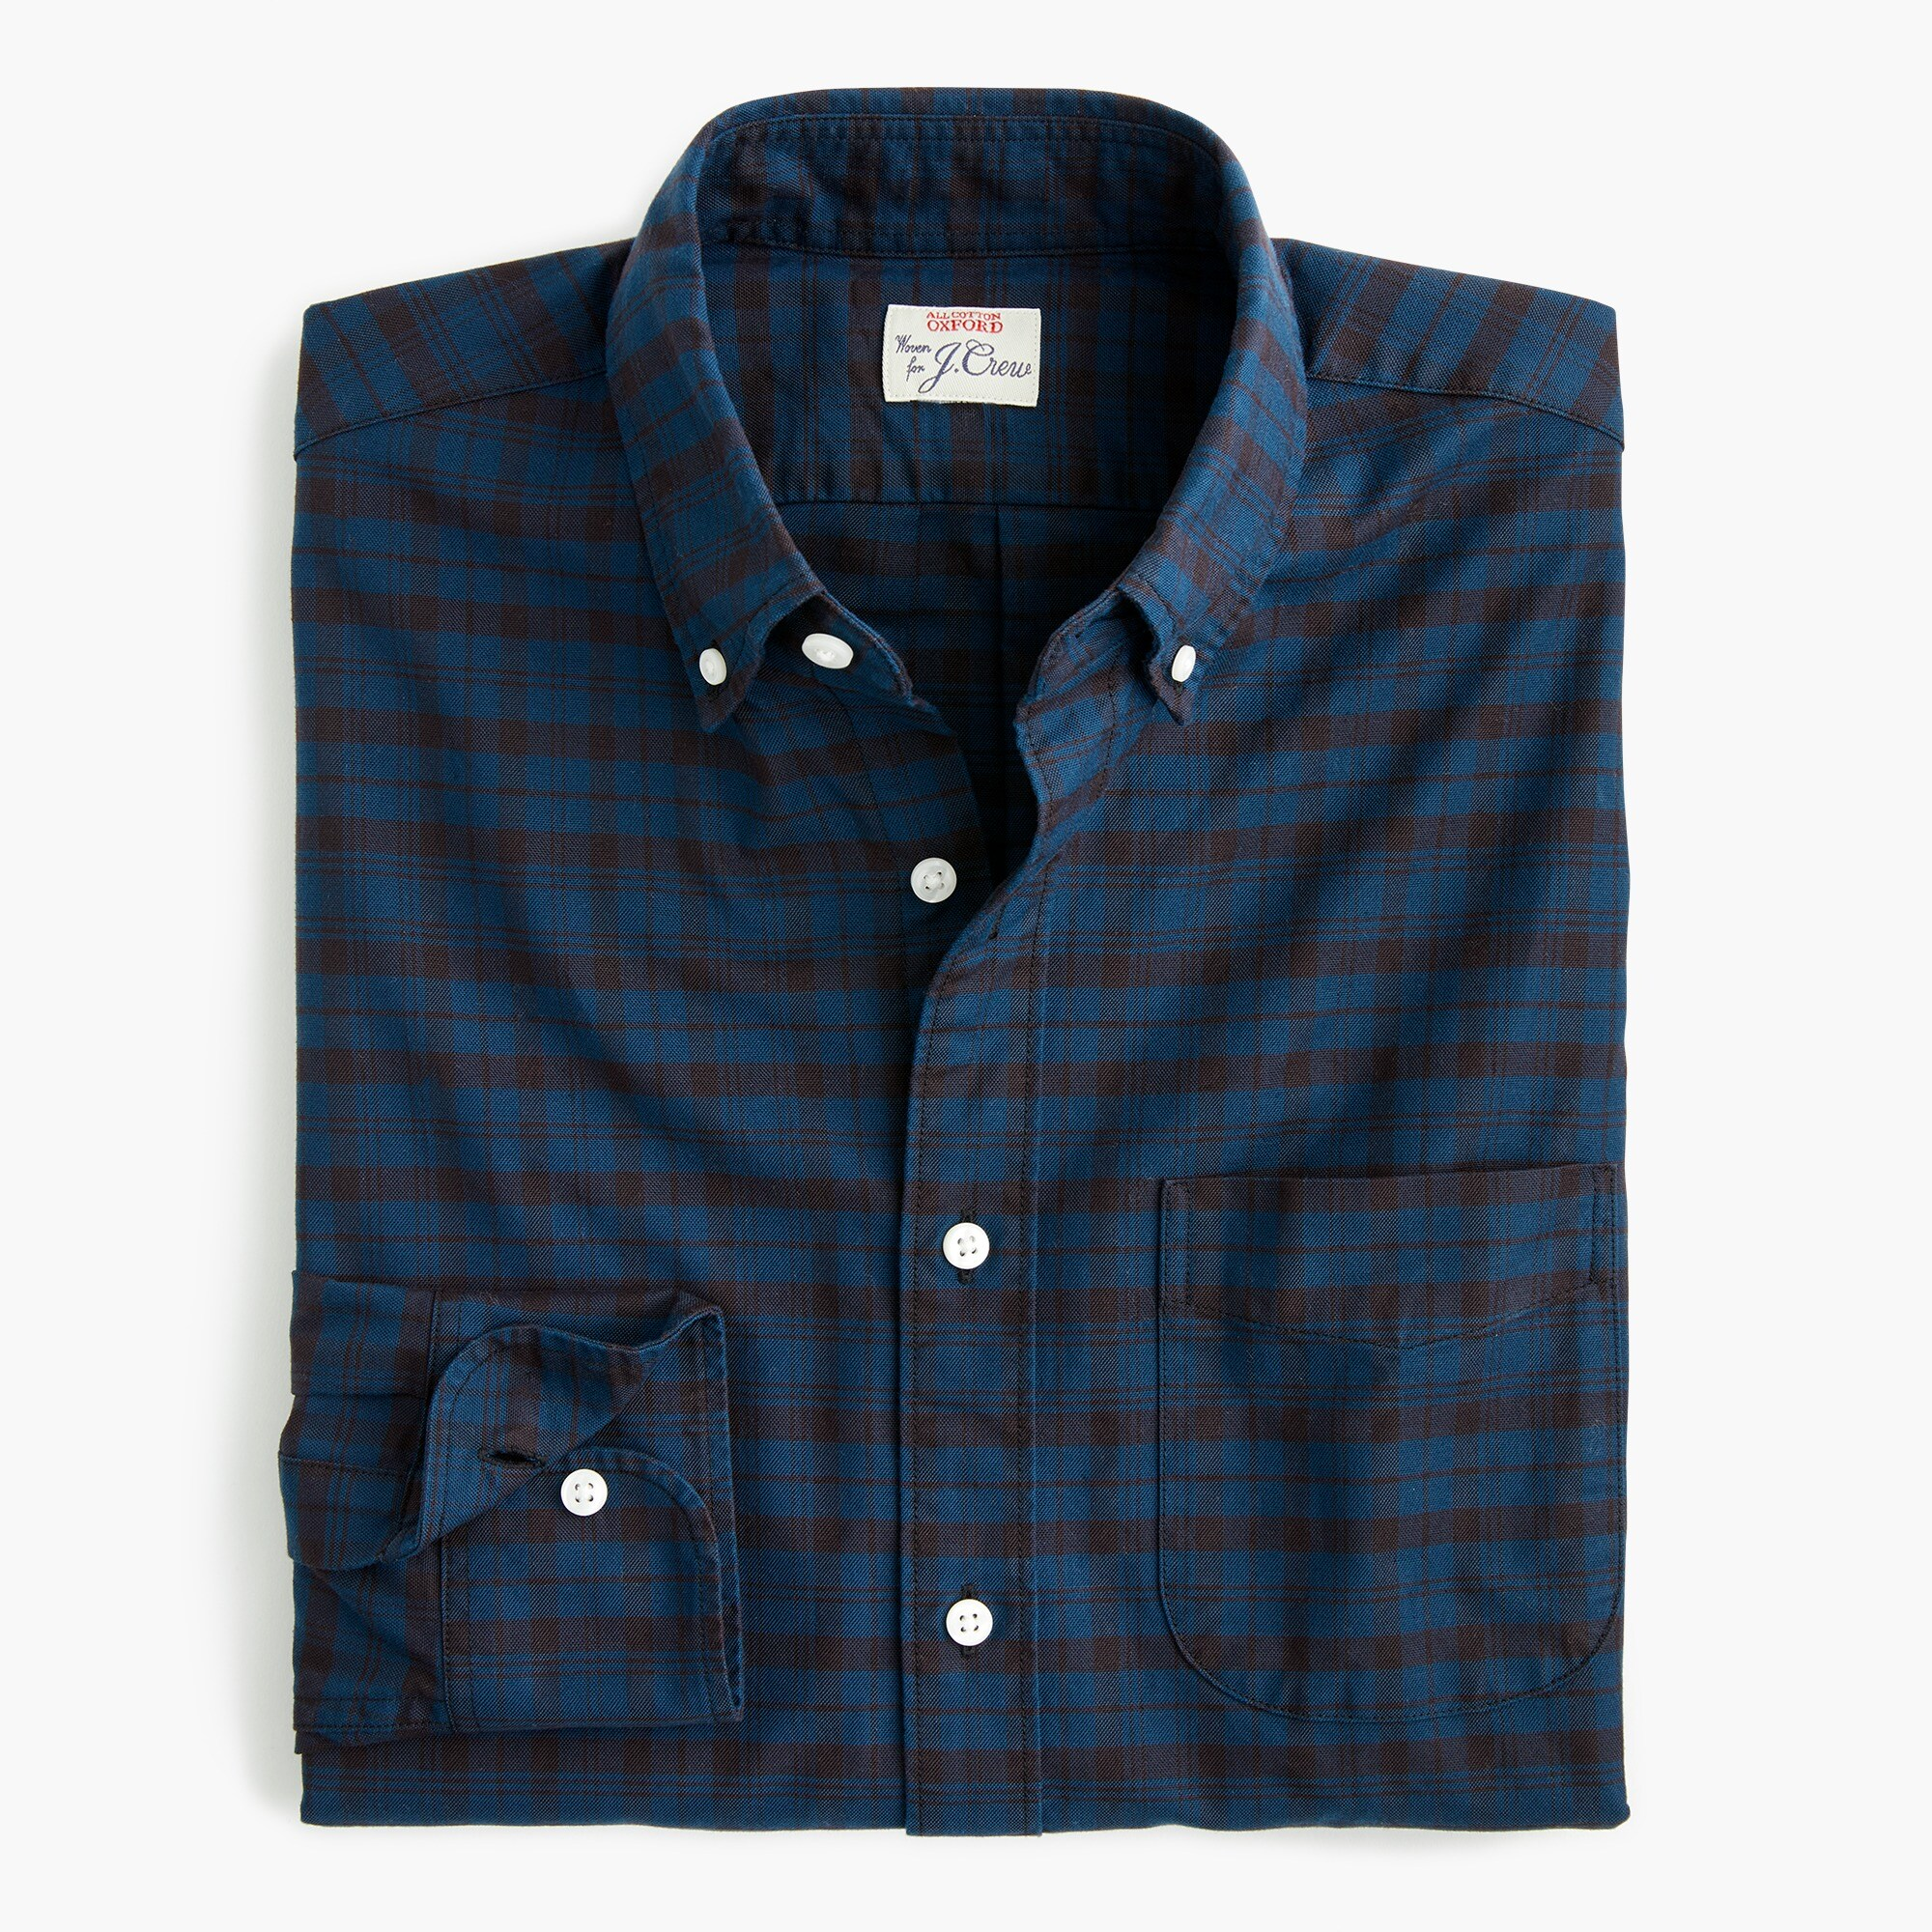 mens American Pima cotton oxford shirt with mechanical stretch in contrast plaid